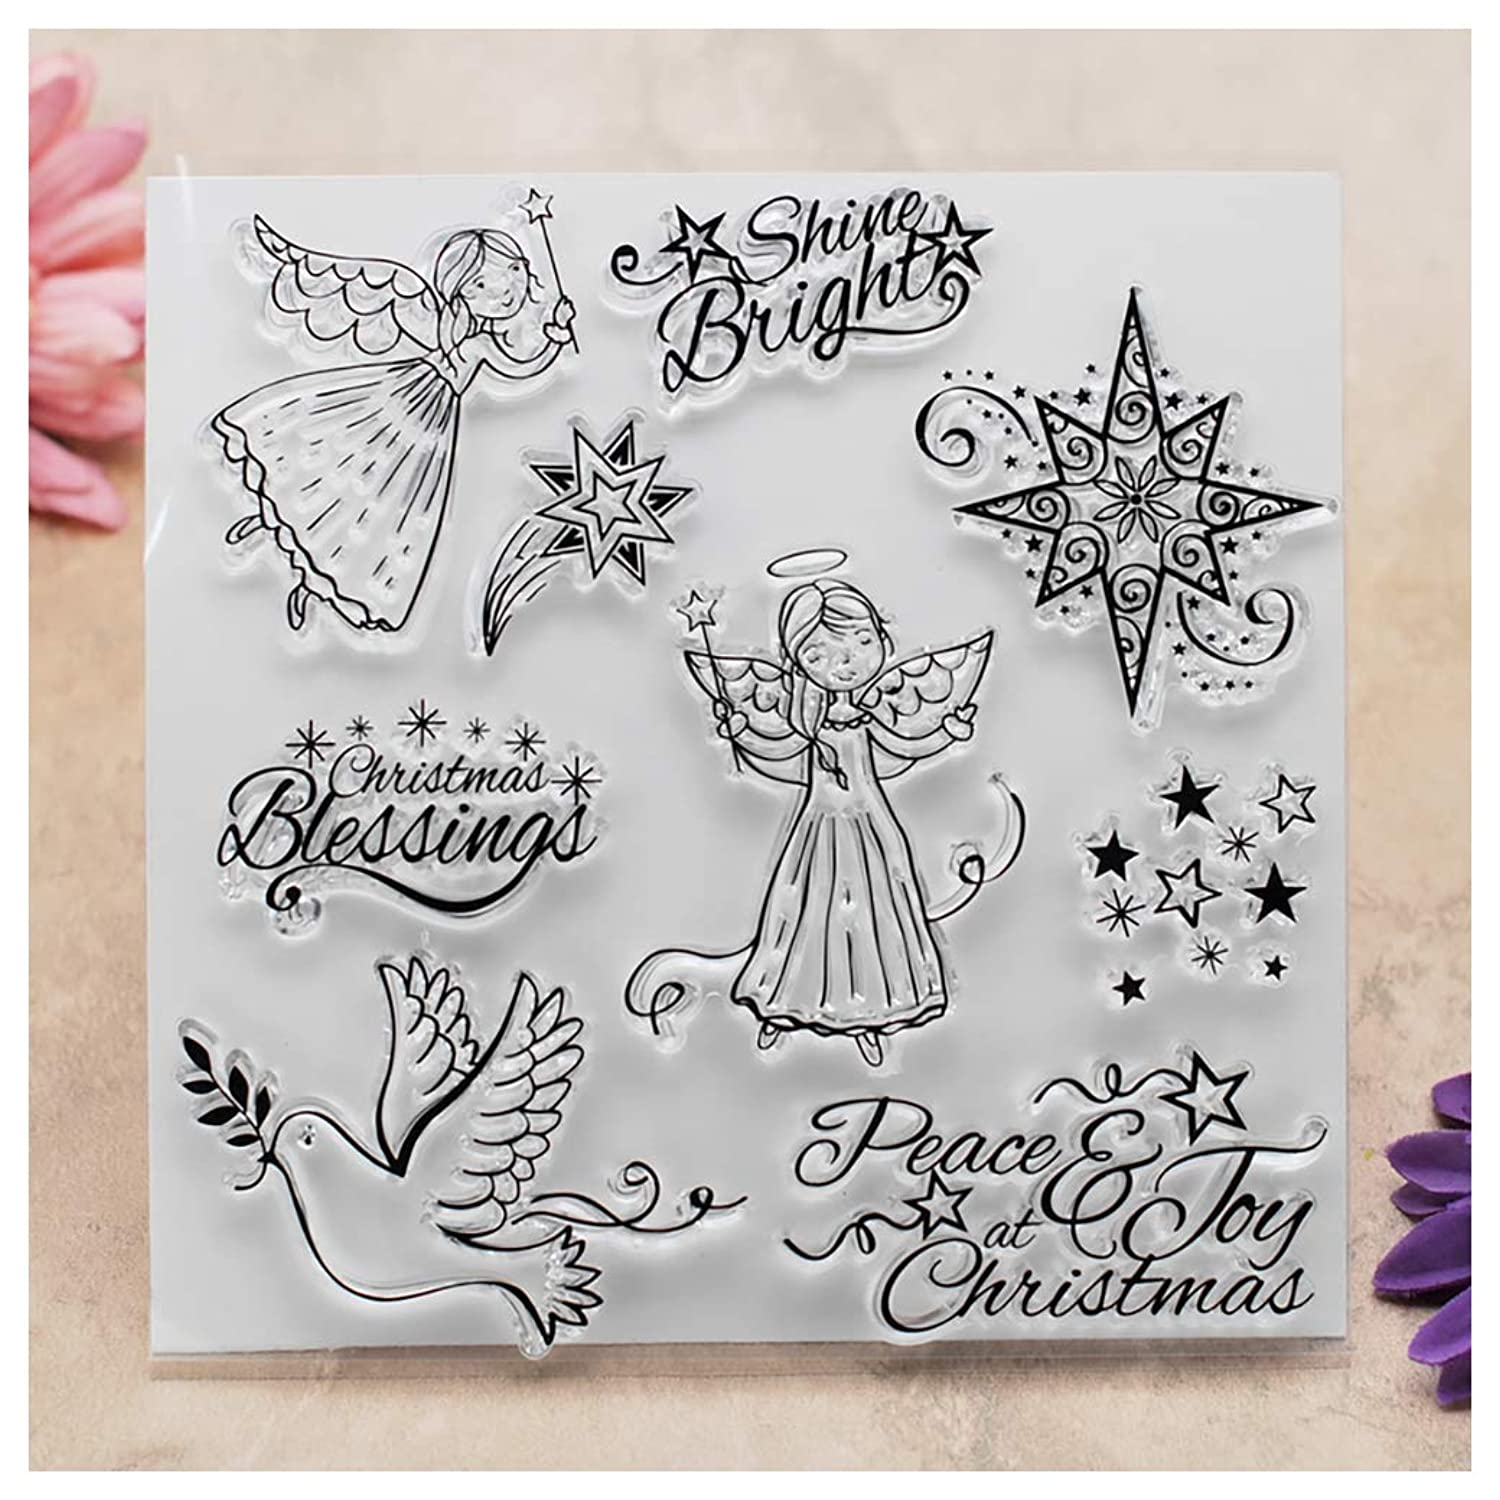 Kwan Crafts Christmas Peace Joy Angel Stars Clear Stamps for Card Making Decoration and DIY Scrapbooking